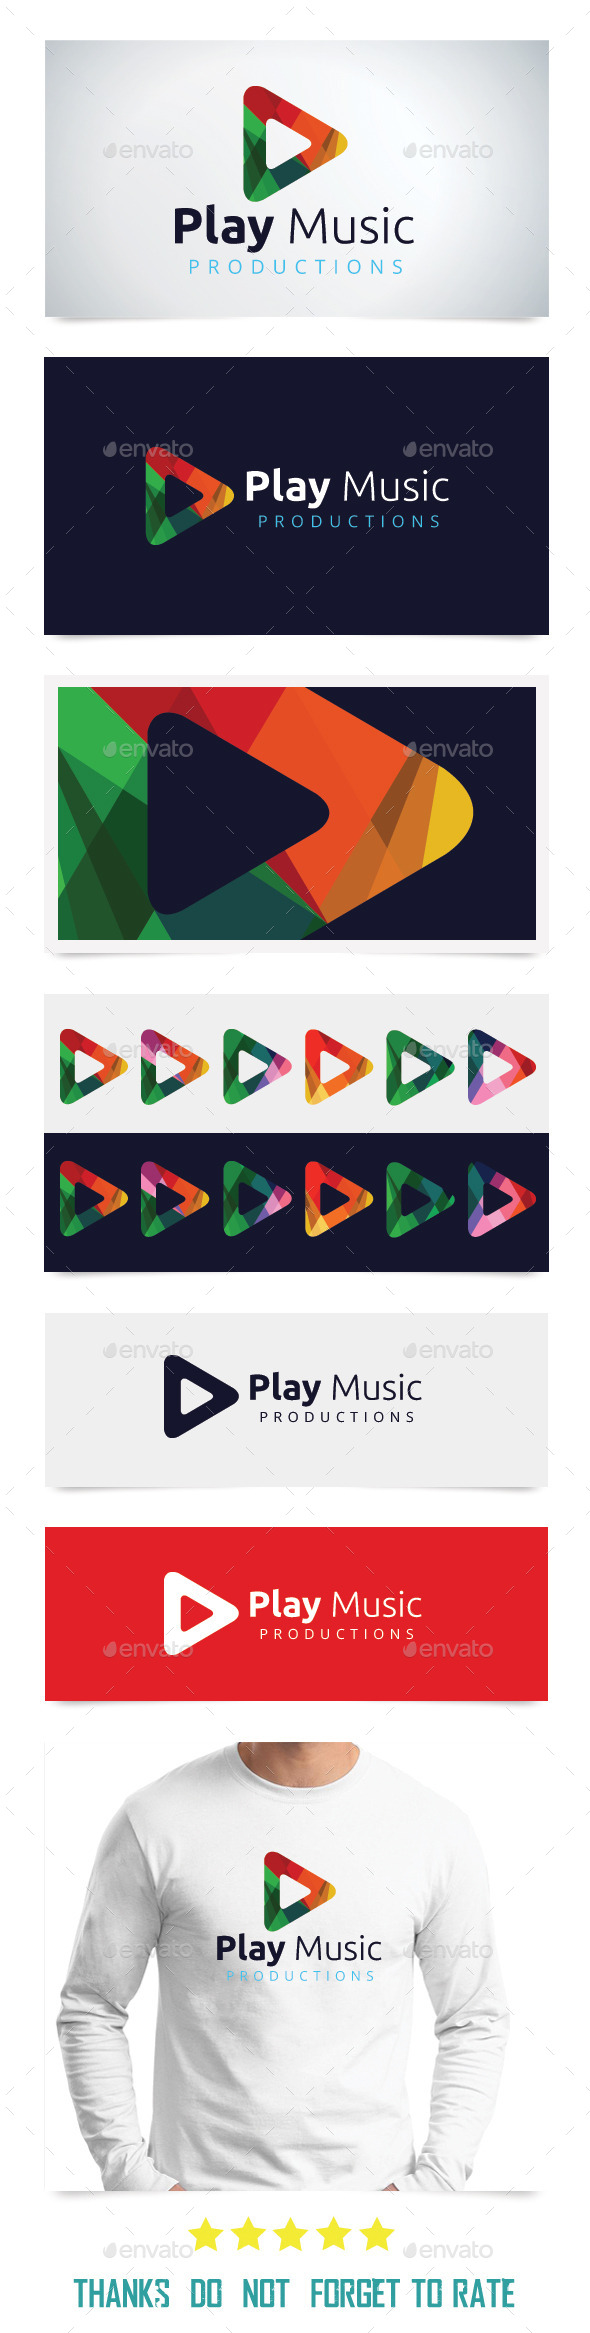 Play Music Logo Templates - Abstract Logo Templates